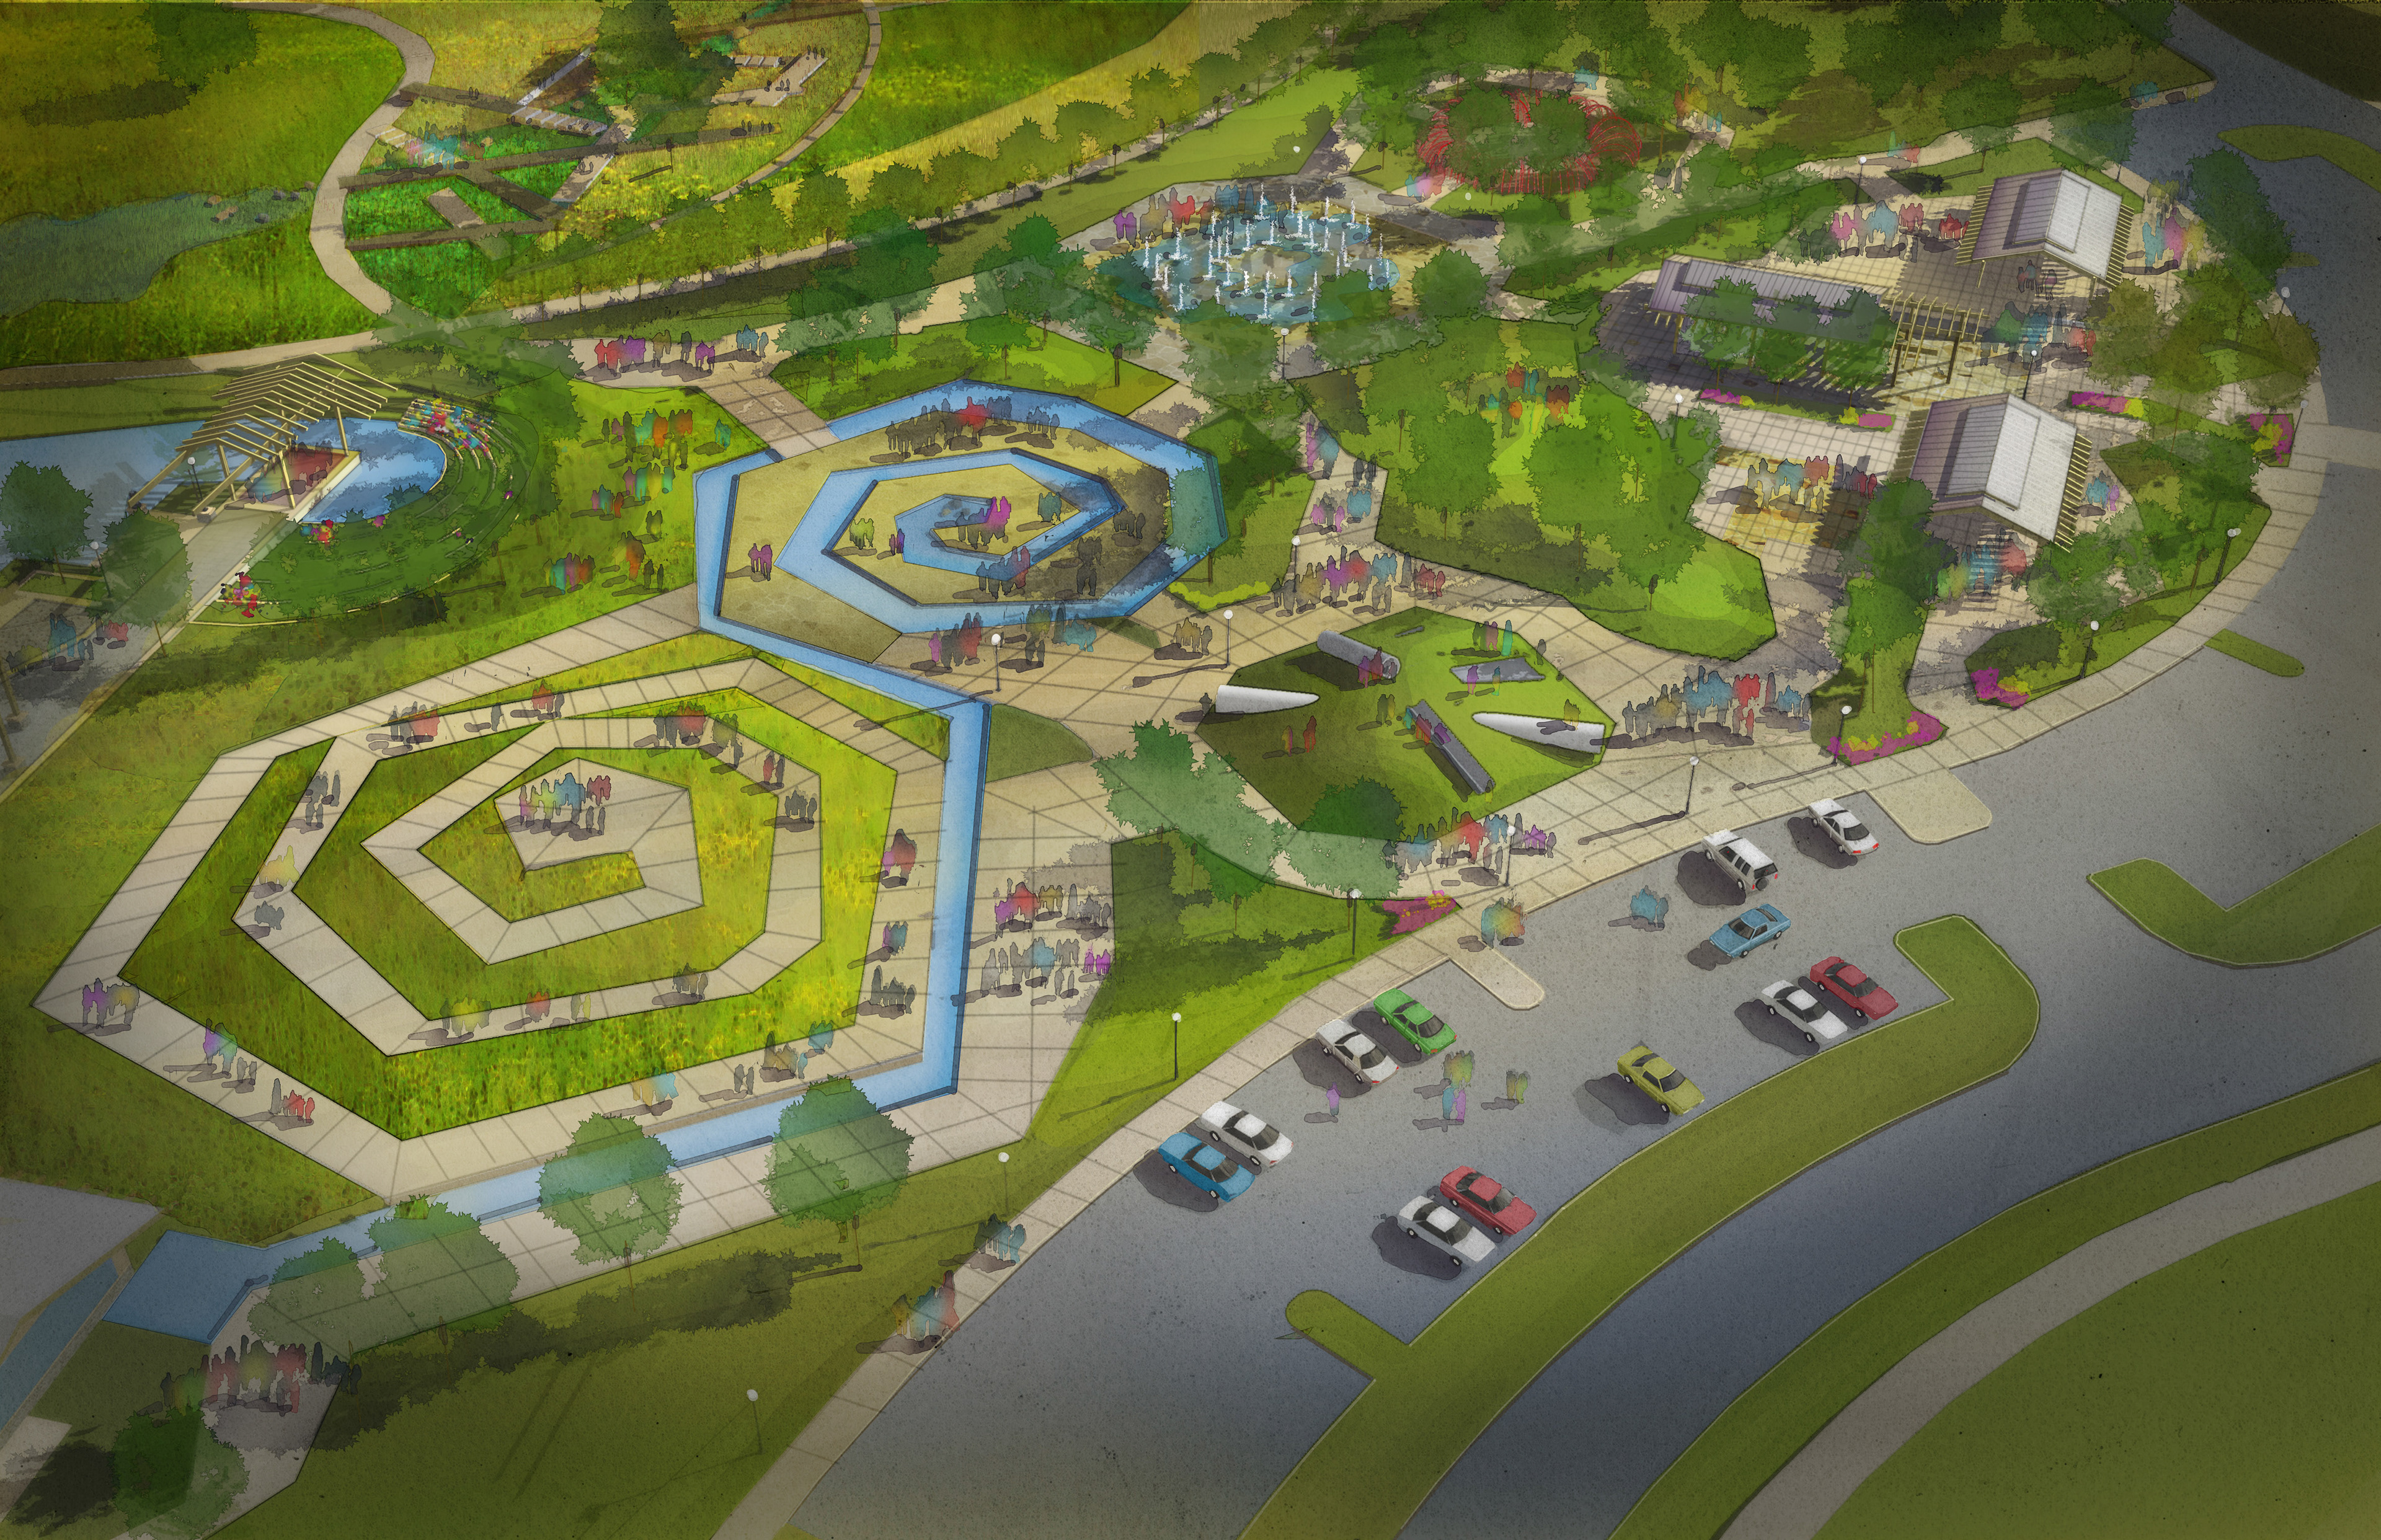 Illustrations And Design Work For Two Park Projects In West Des Moines Carlisle IA Workflow Sketch Up Rhino Cinema 4D Photoshop Landscape